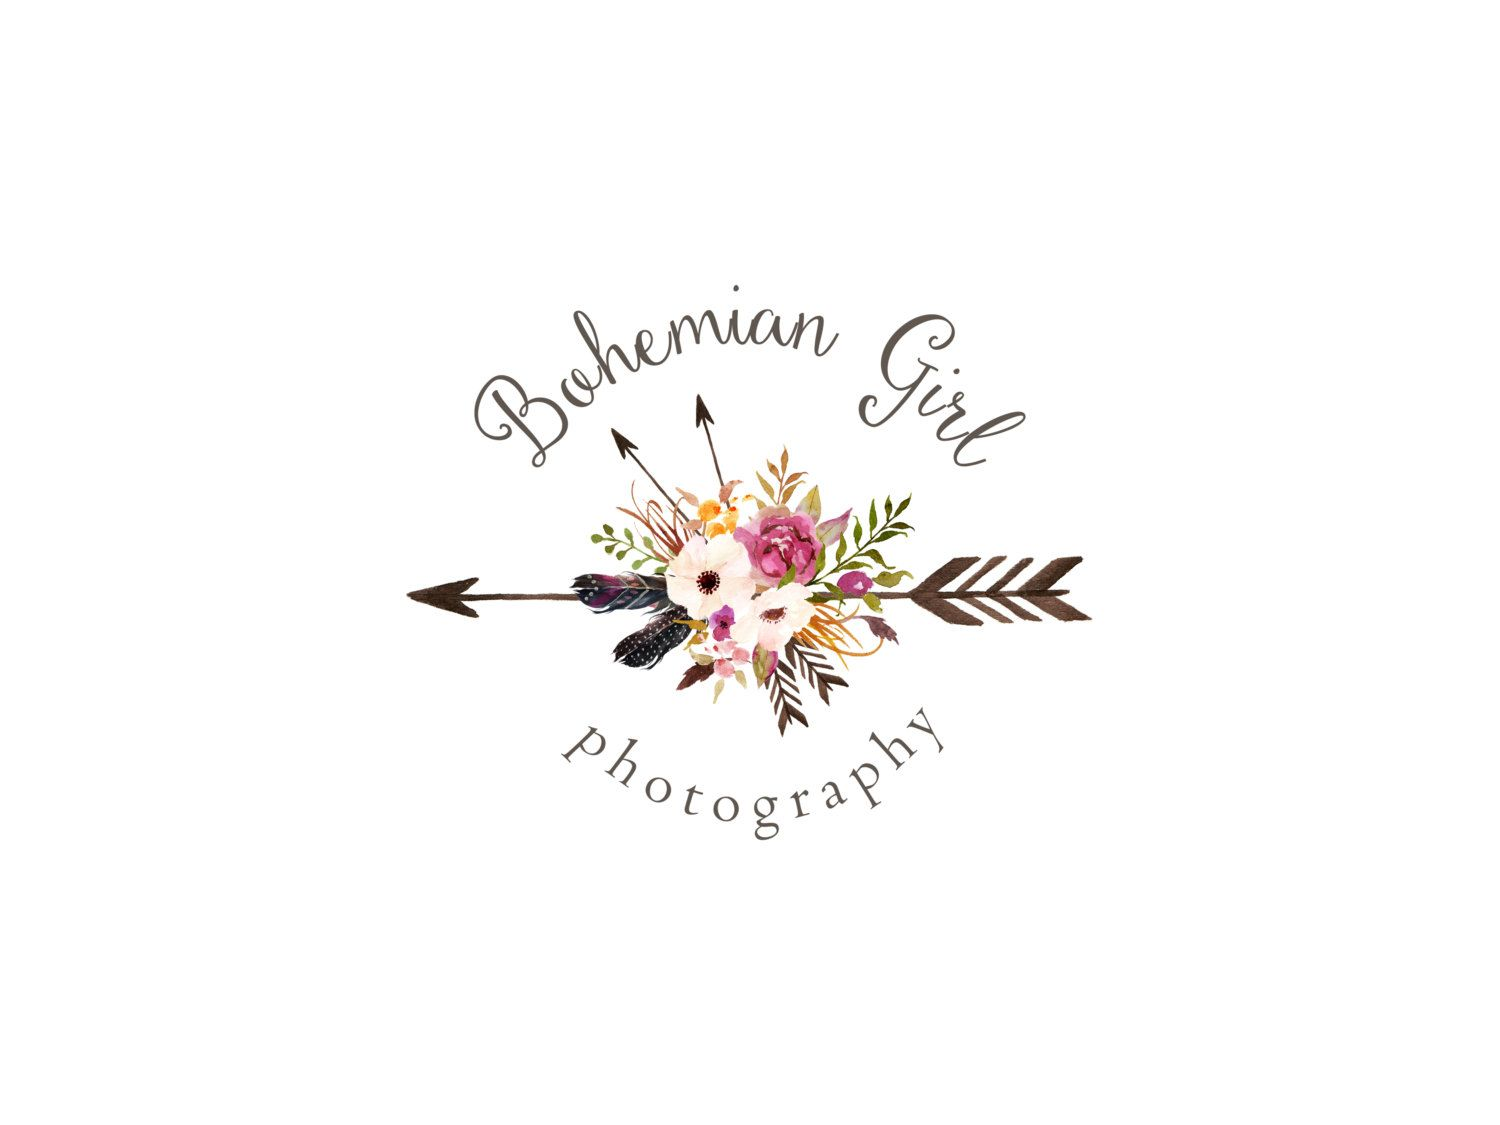 photography logo and watermark premade watercolor flowers